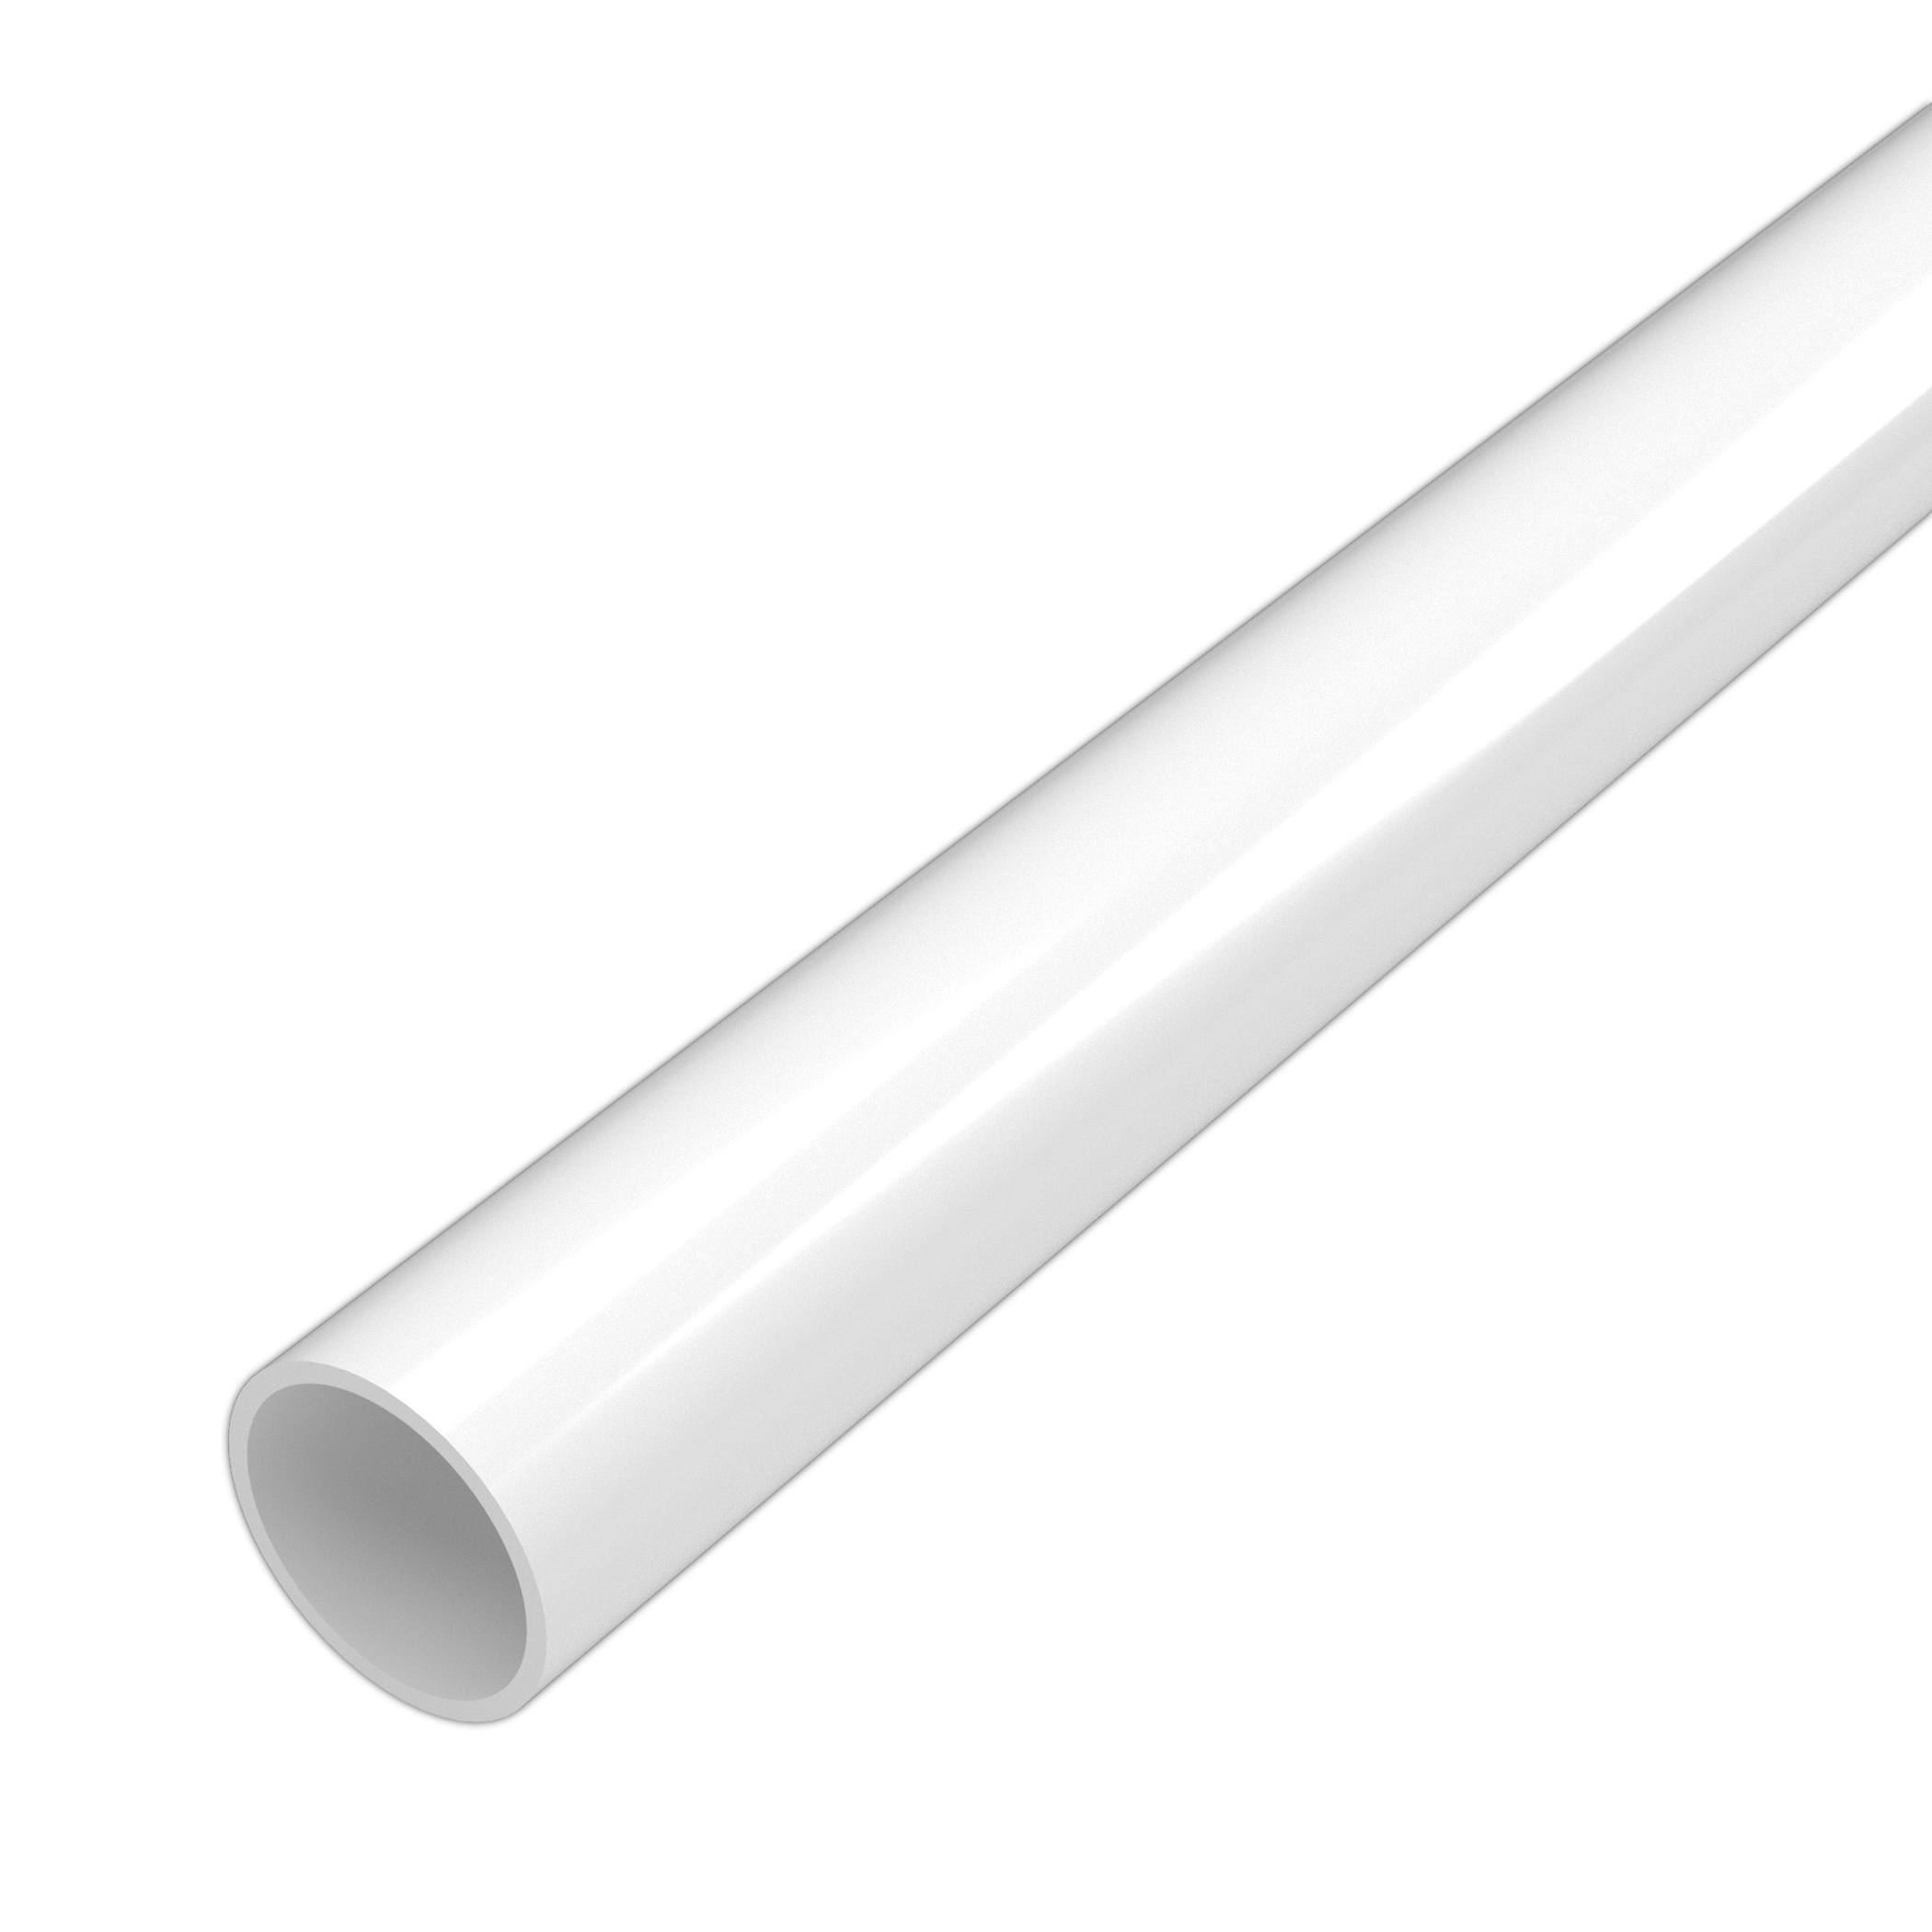 PVC SCH 40 Pipe, 20 ft, Plain End